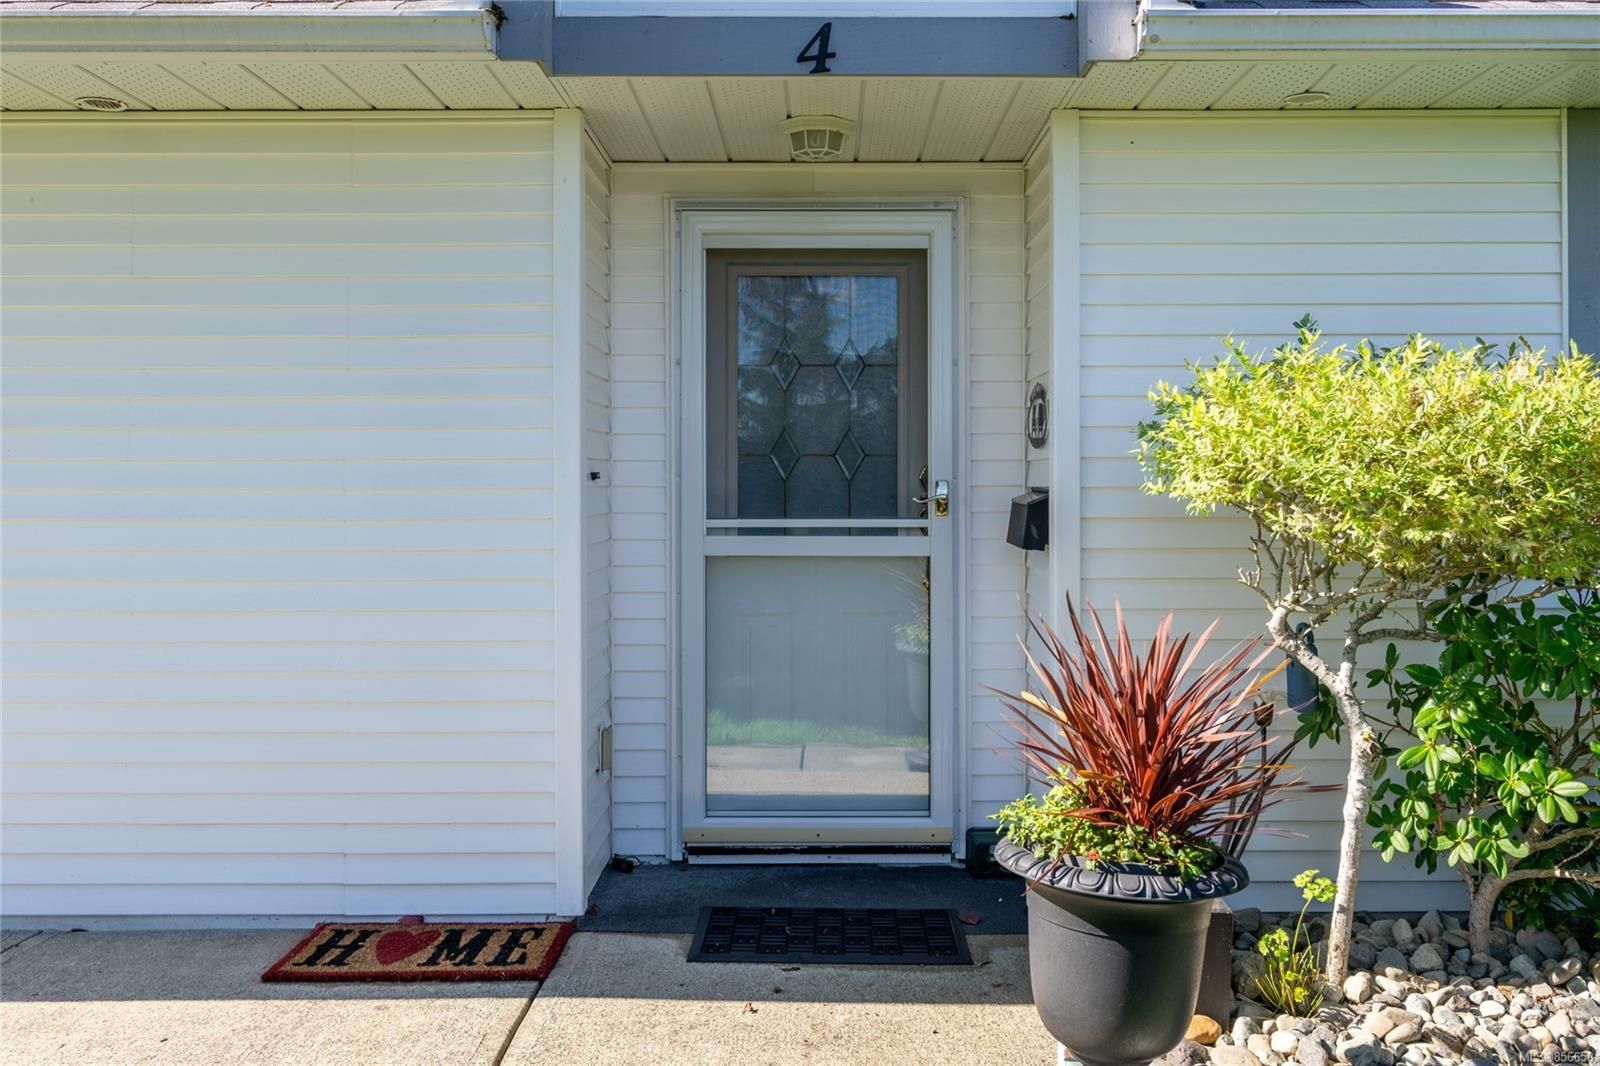 Photo 2: Photos: 4 305 Blower Rd in : PQ Parksville Row/Townhouse for sale (Parksville/Qualicum)  : MLS®# 856650